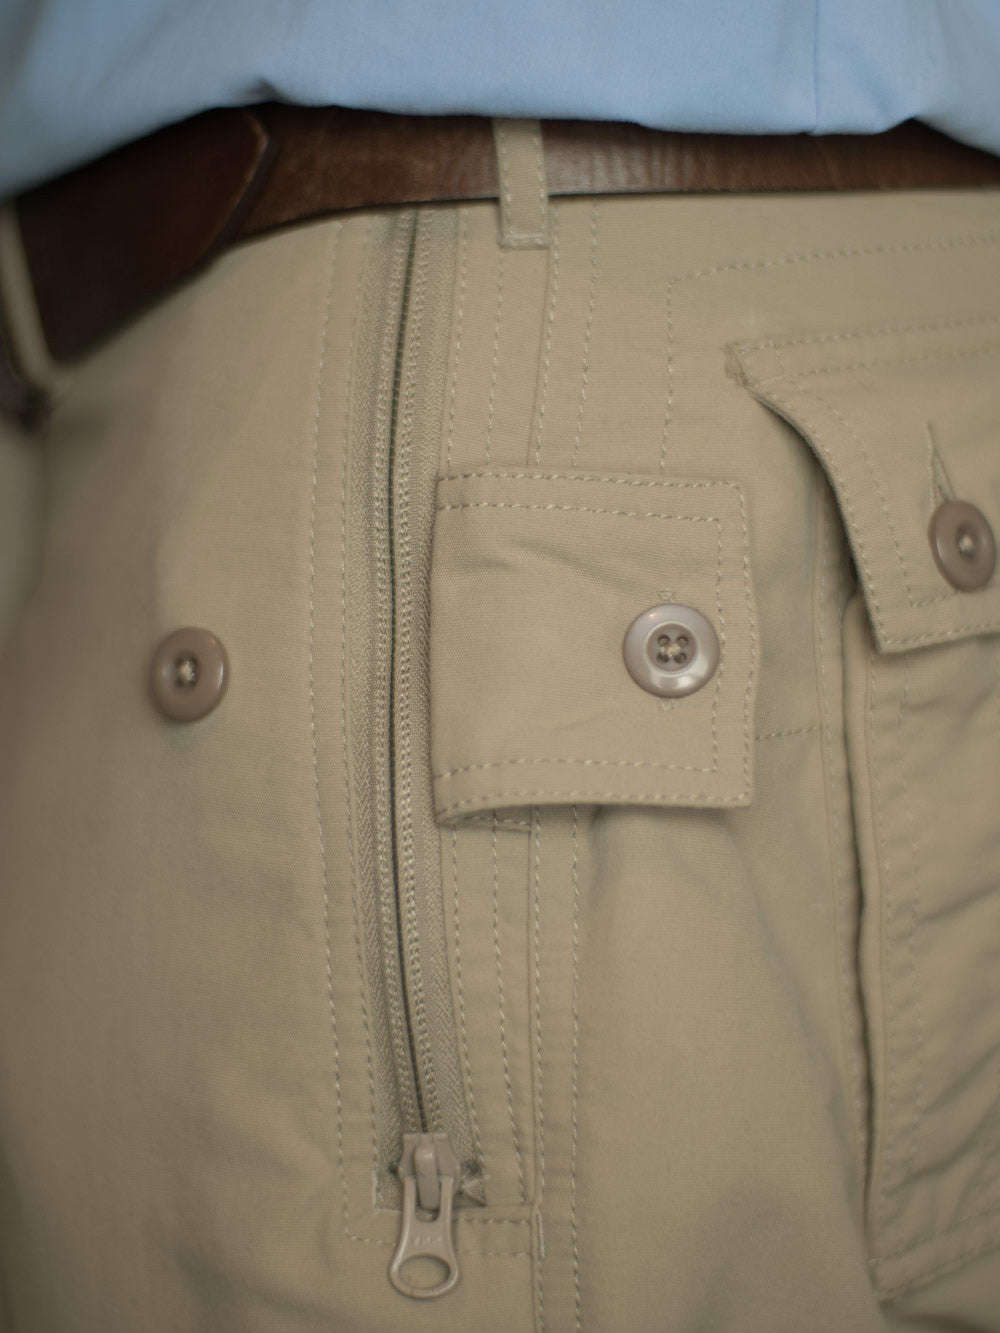 Pick Pocket Proof 174 Adventure Travel Pants Clothing Arts